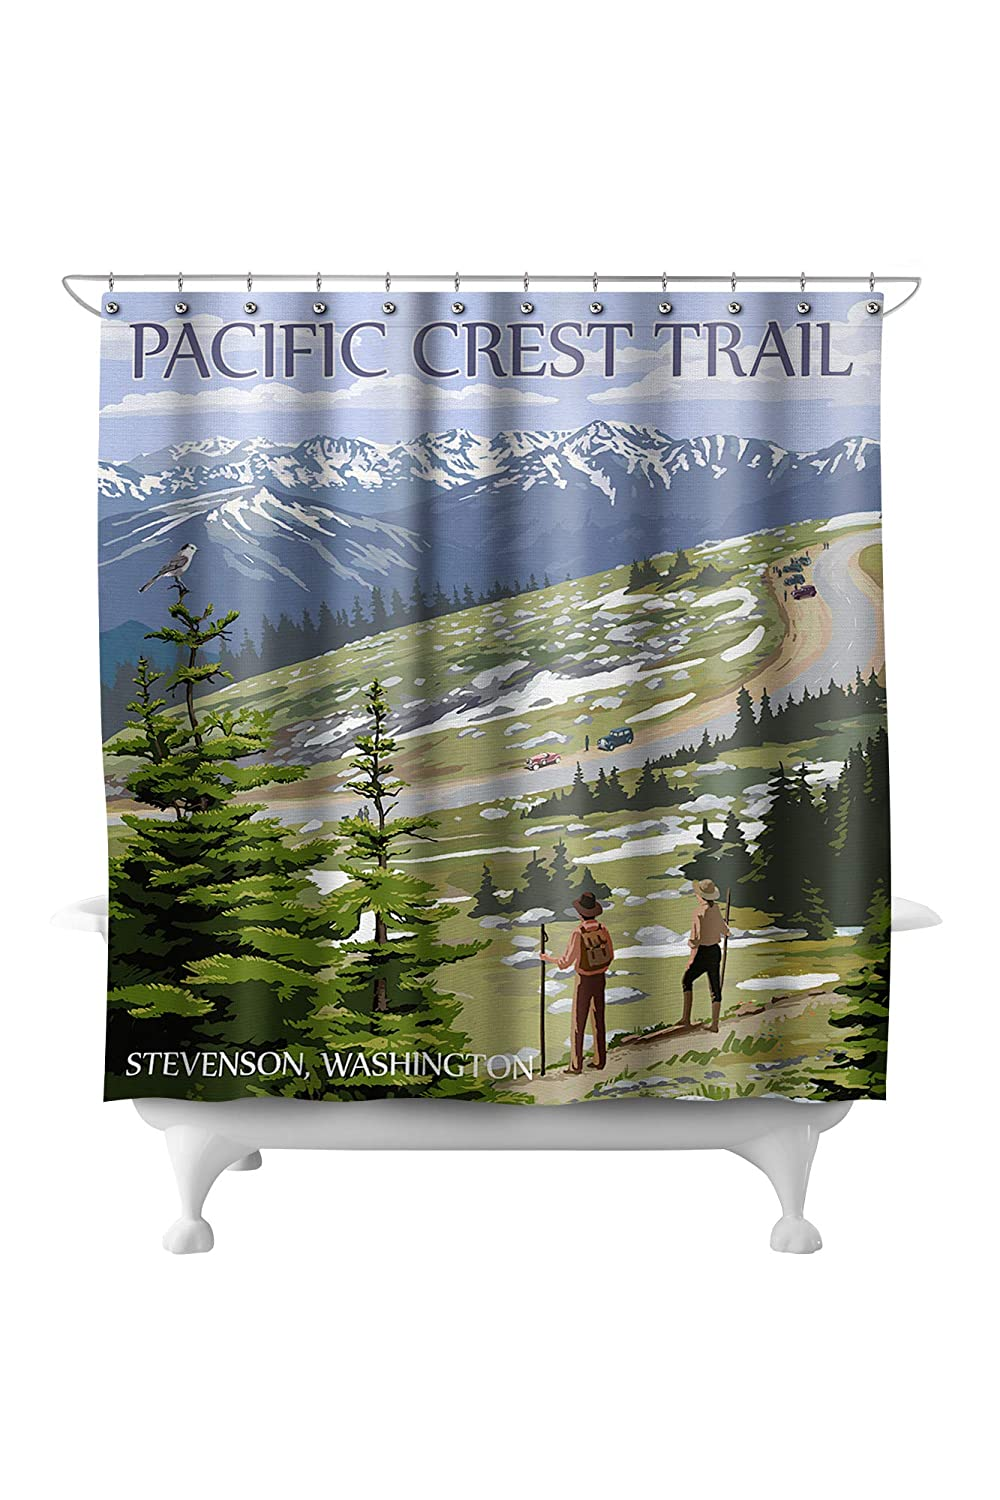 Stevenson, Washington - Pacific Crest Trail and Hikers 71342 (74x74 Polyester Shower Curtain)